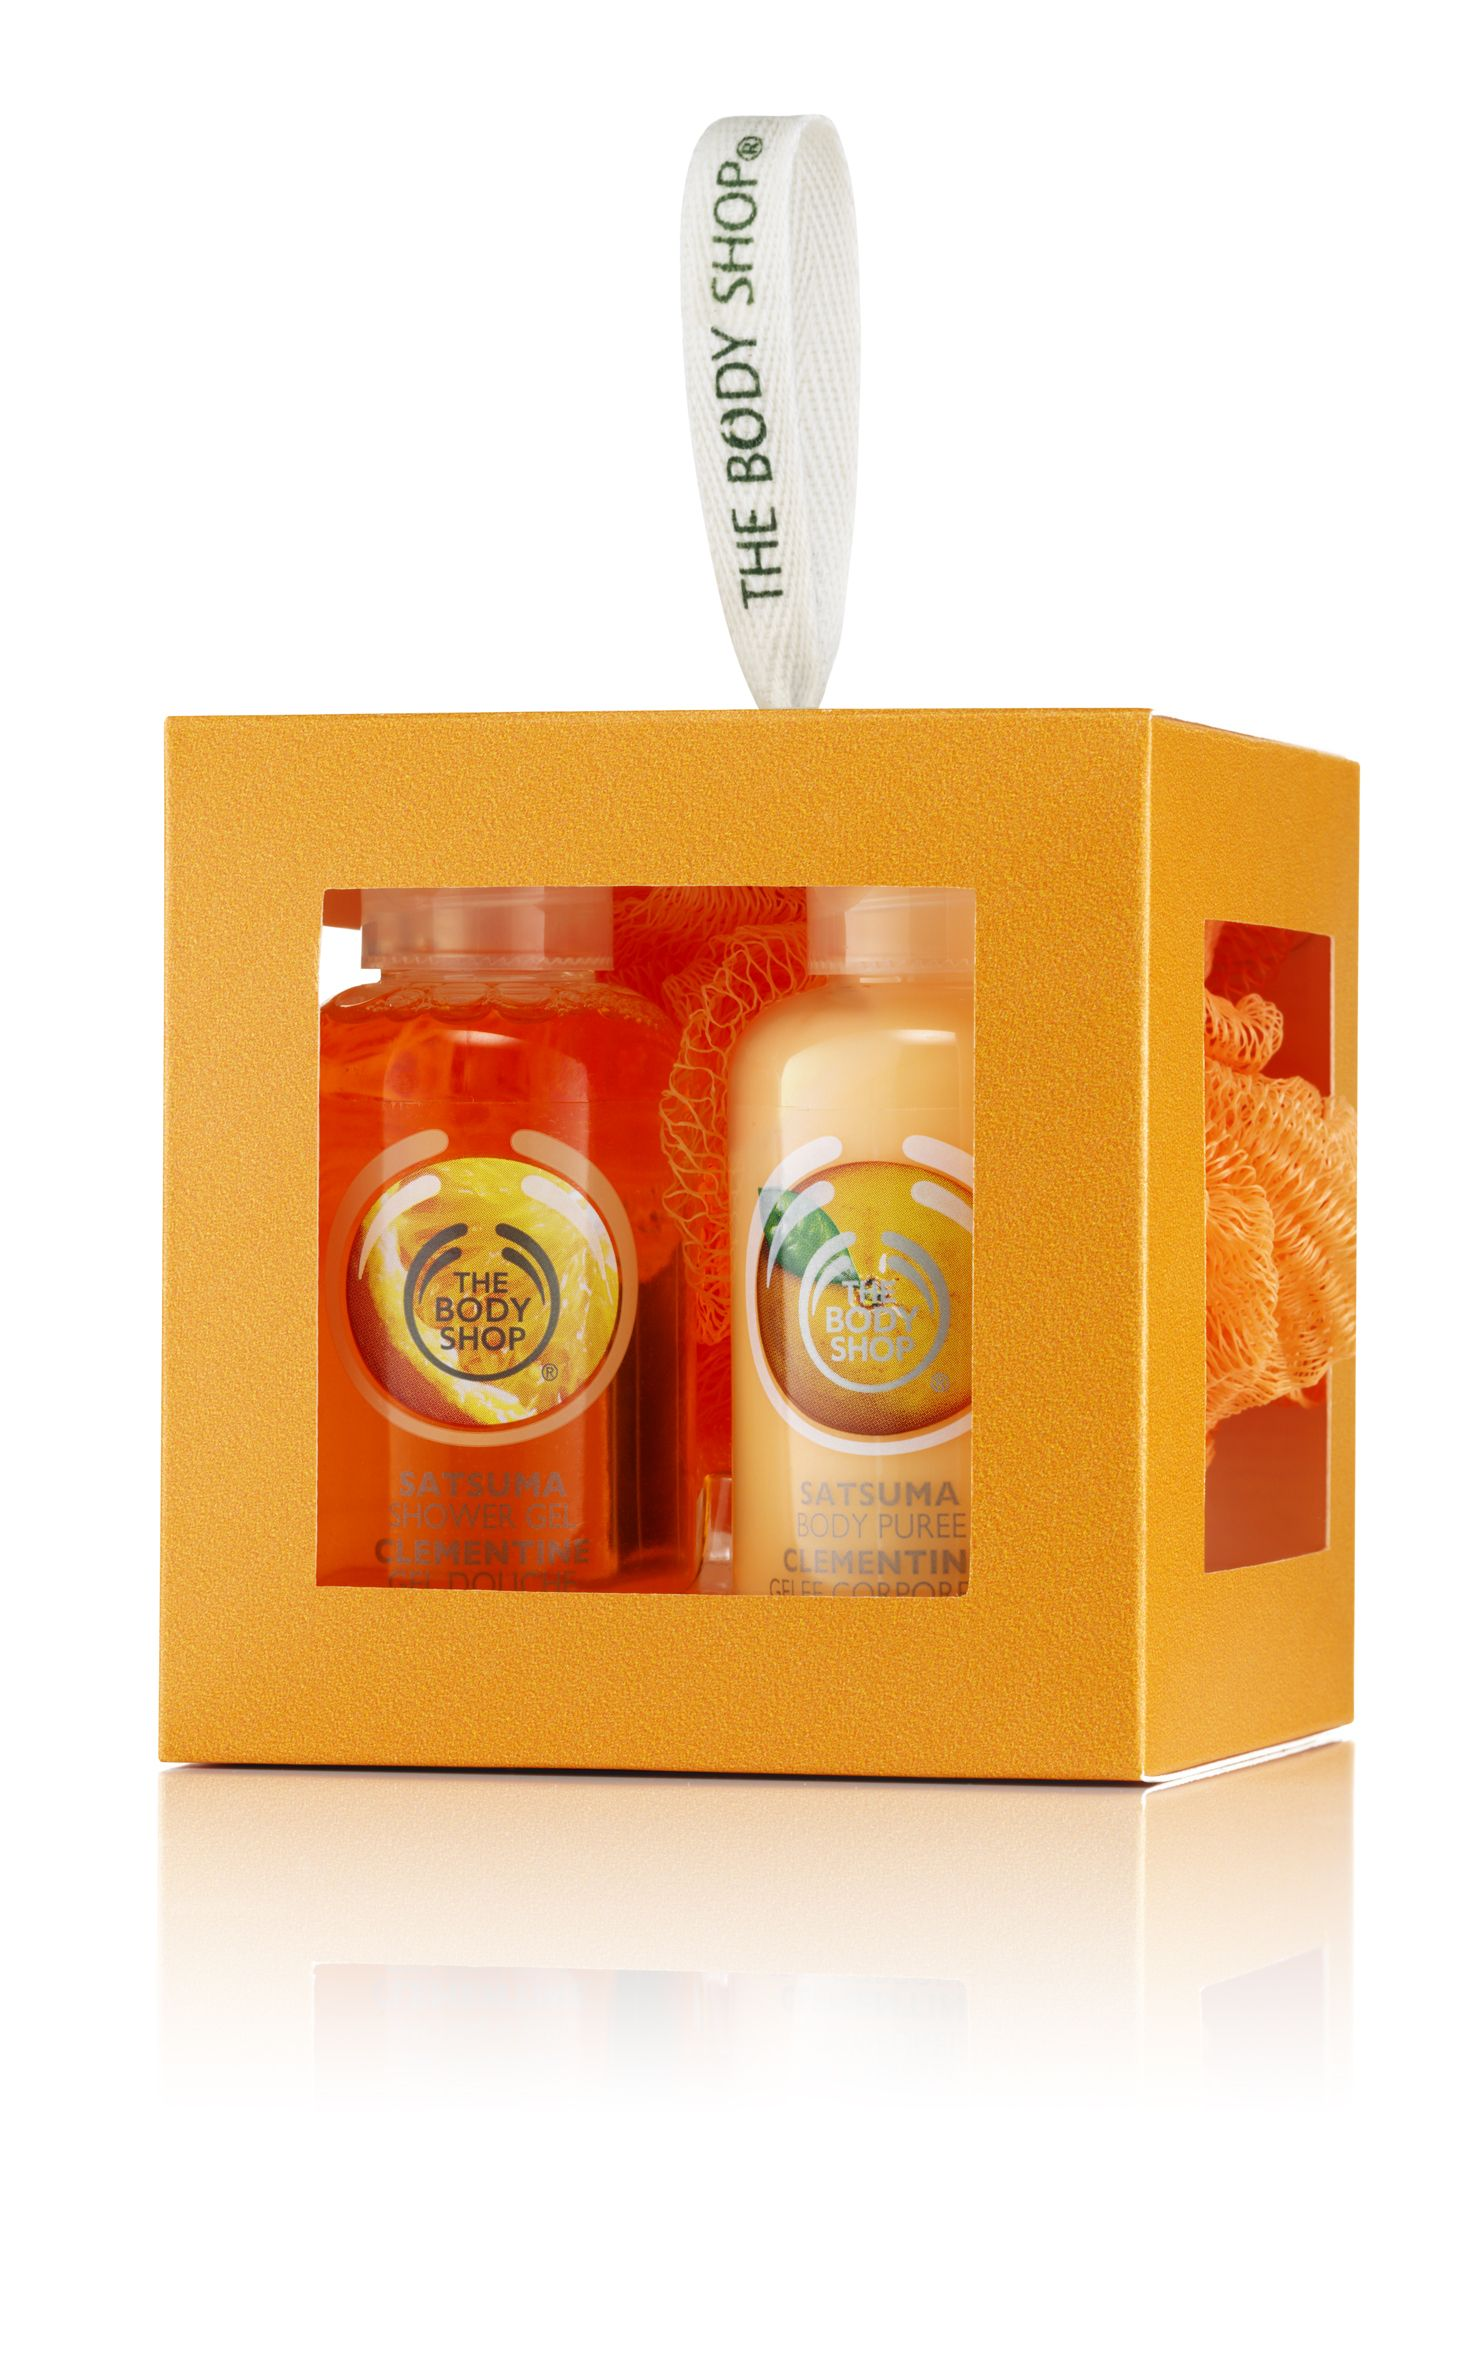 The Body Shop Satsuma Gift Cube R100.00 | Christmas Gifts 2014 ...